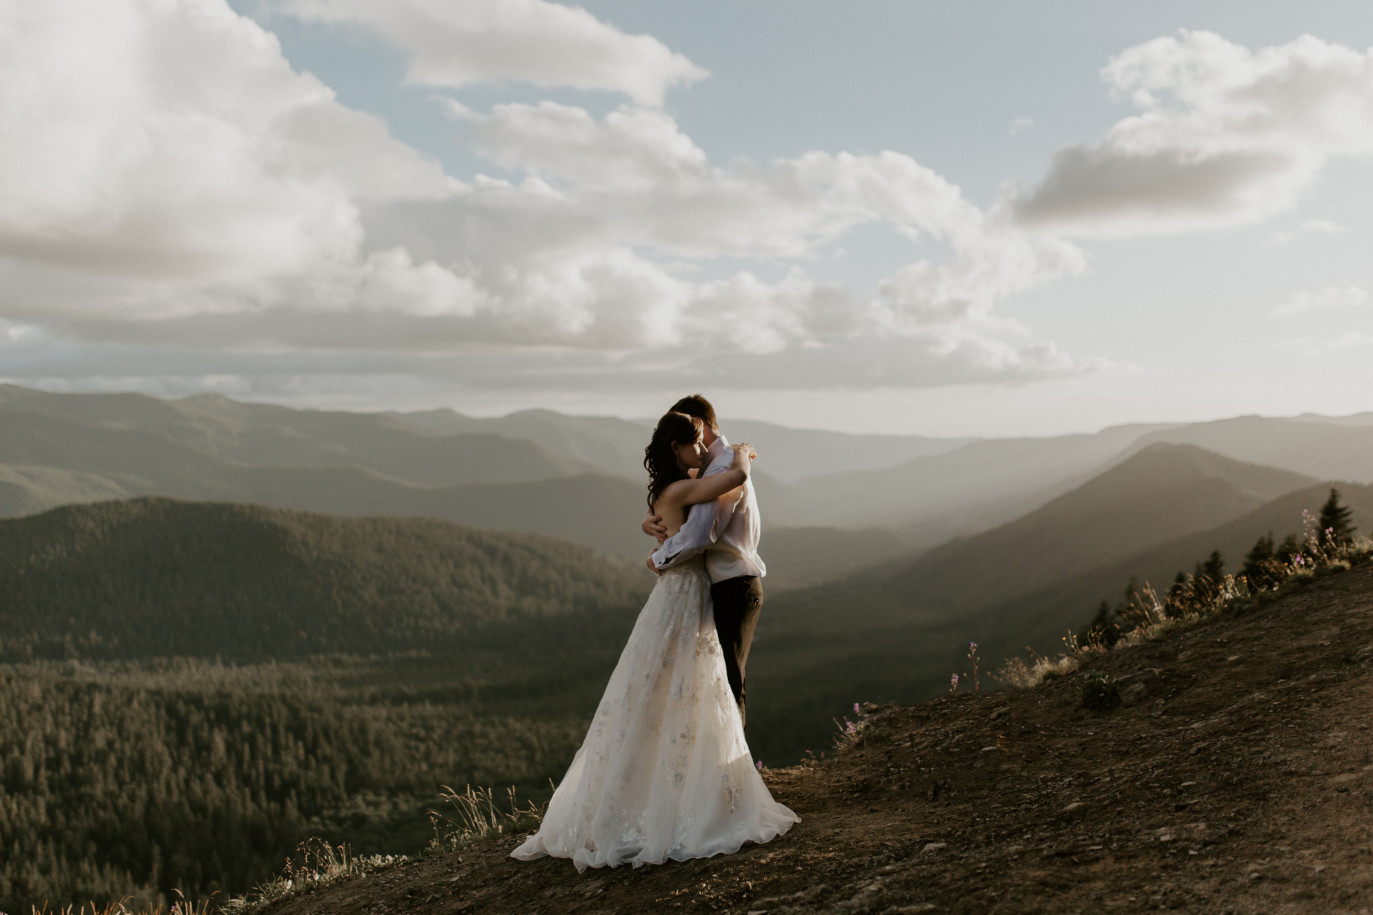 Moira and Ryan stand near a cliff with the view of the mountains in the background. Adventure elopement wedding shoot by Sienna Plus Josh.